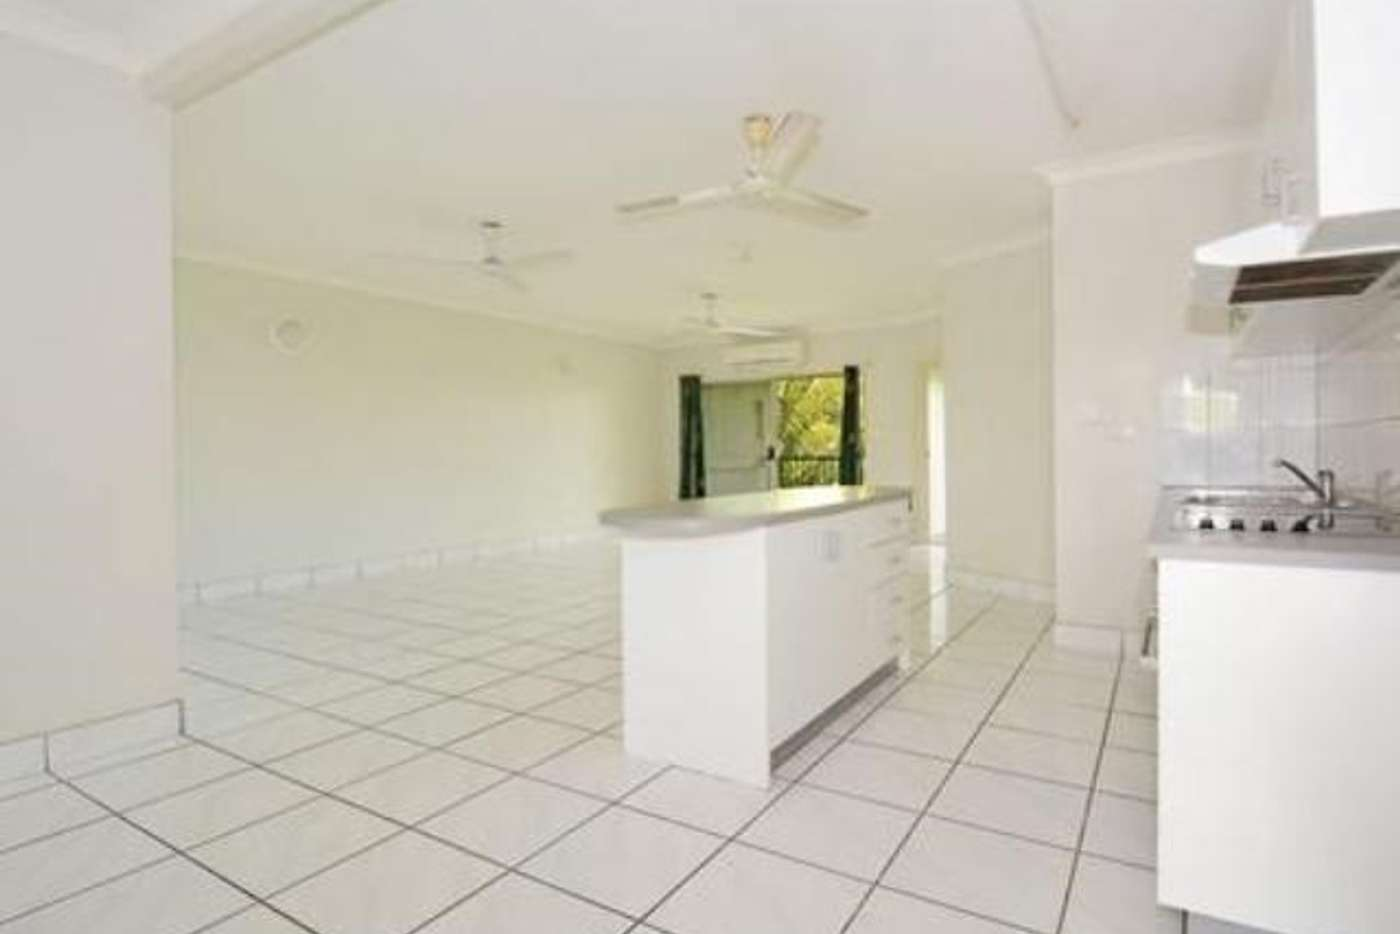 Main view of Homely unit listing, 17/44 Lorna Lim Terrace, Driver NT 830